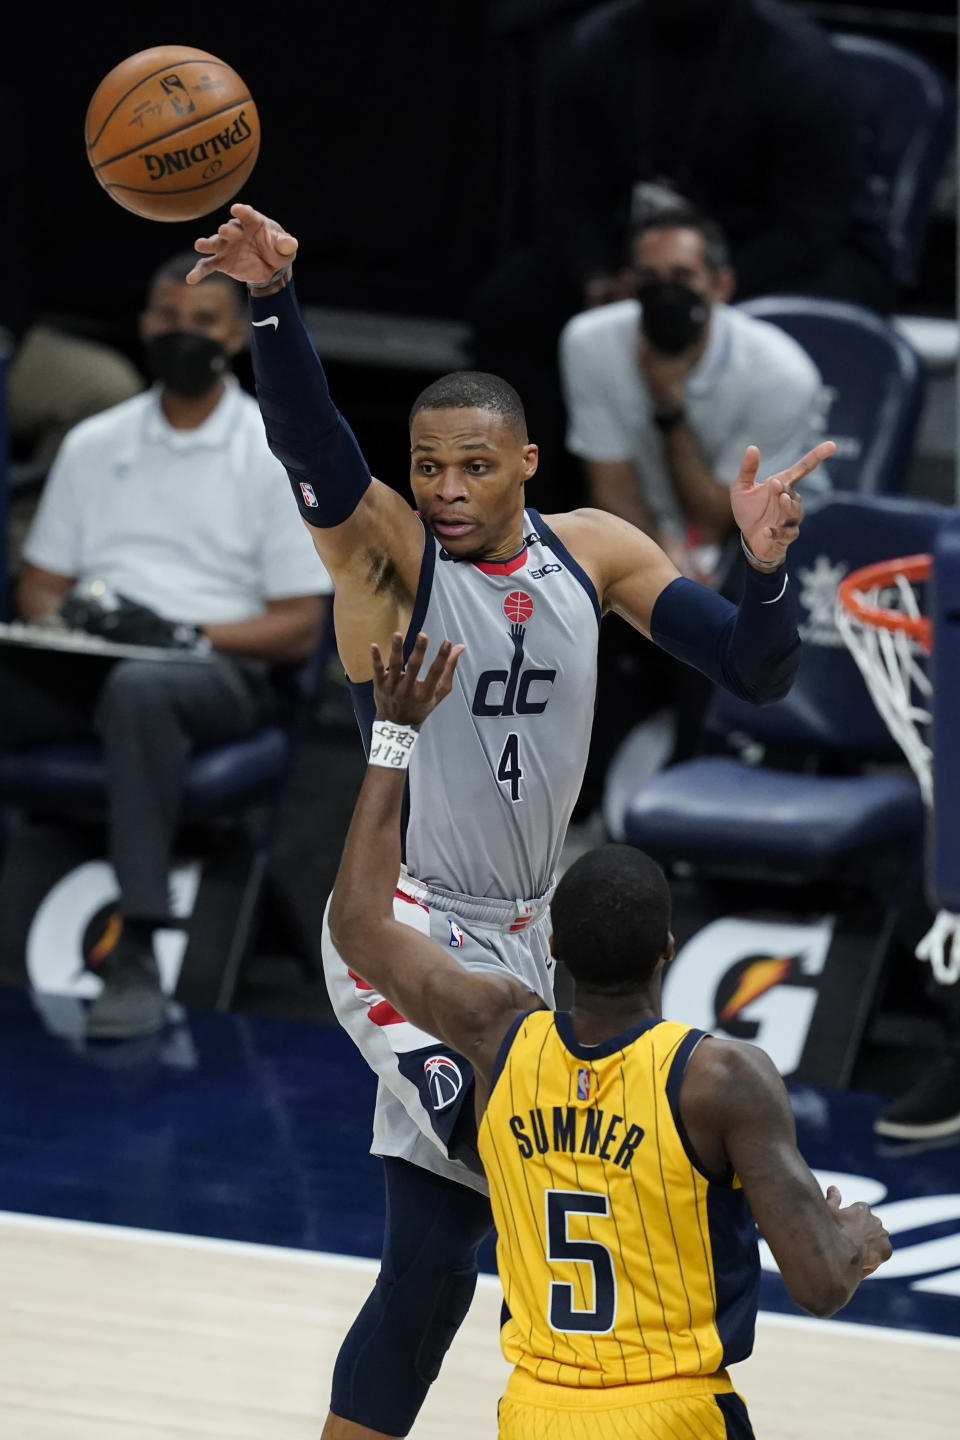 Washington Wizards' Russell Westbrook (4) makes a pass against Indiana Pacers' Edmond Sumner (5) during the first half of an NBA basketball game, Saturday, May 8, 2021, in Indianapolis. (AP Photo/Darron Cummings)